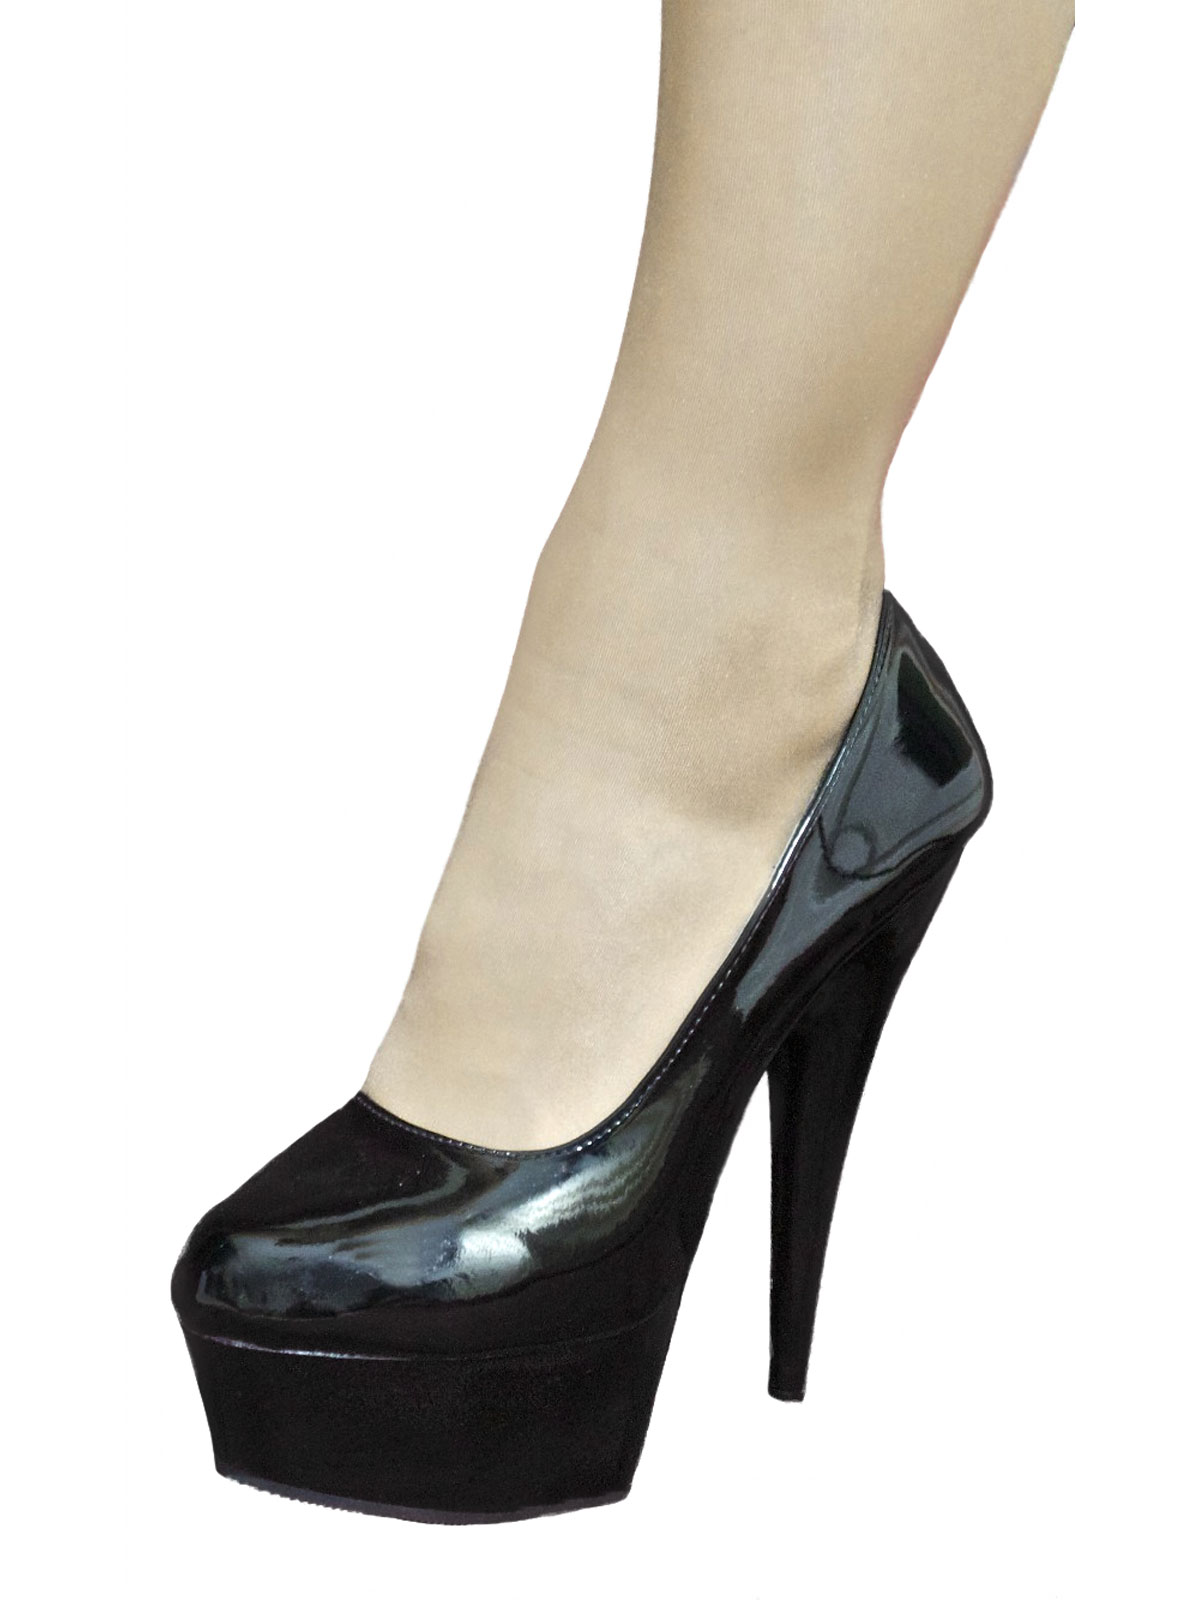 Find great deals on eBay for platform high heels pumps. Shop with confidence.